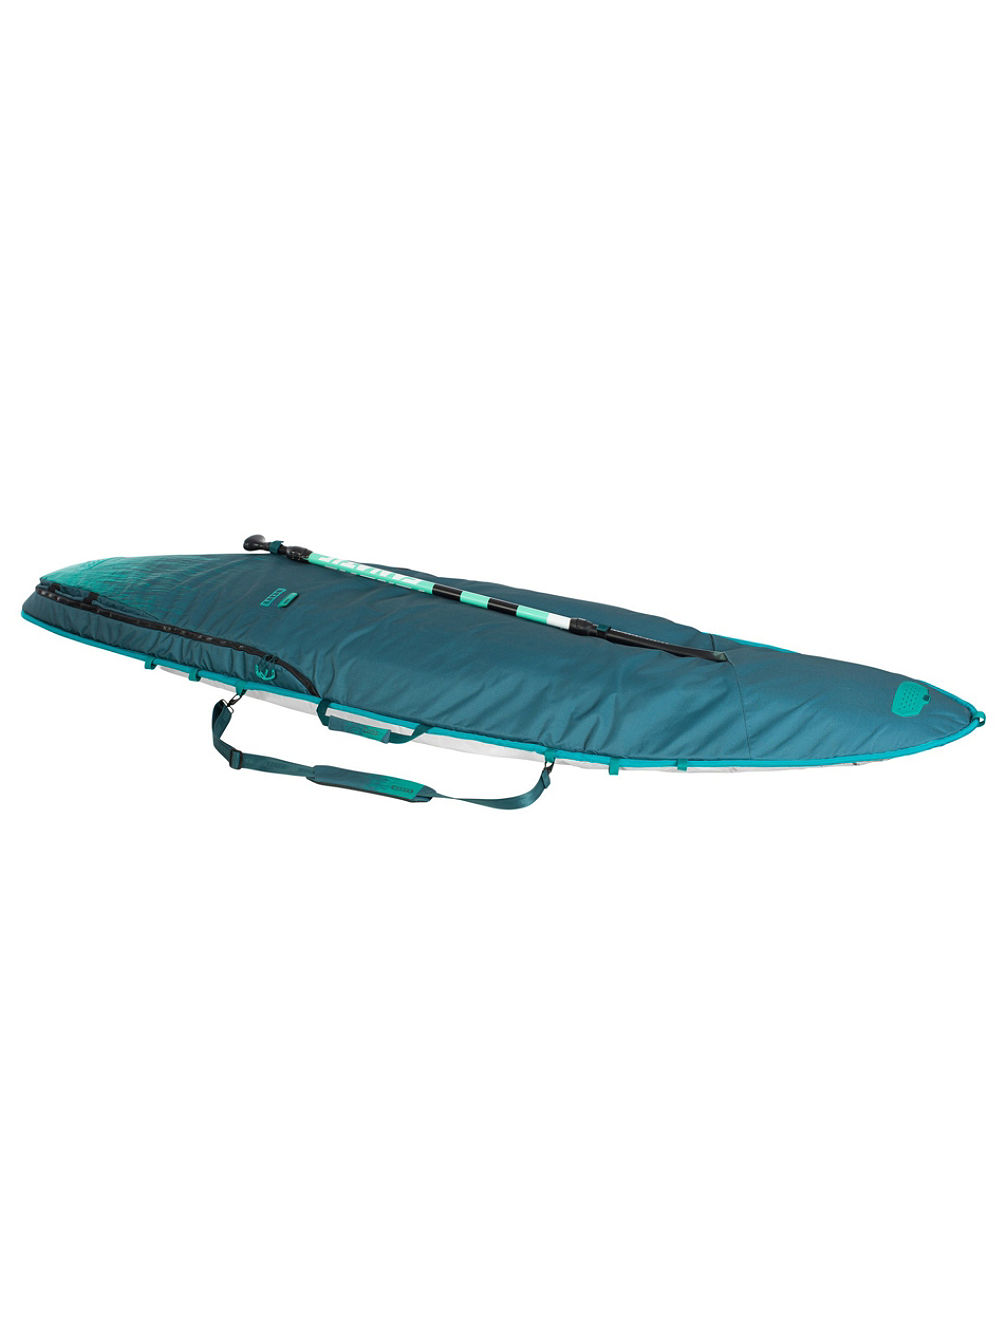 SUP TEC 8'5x32'' Surfboard Bag